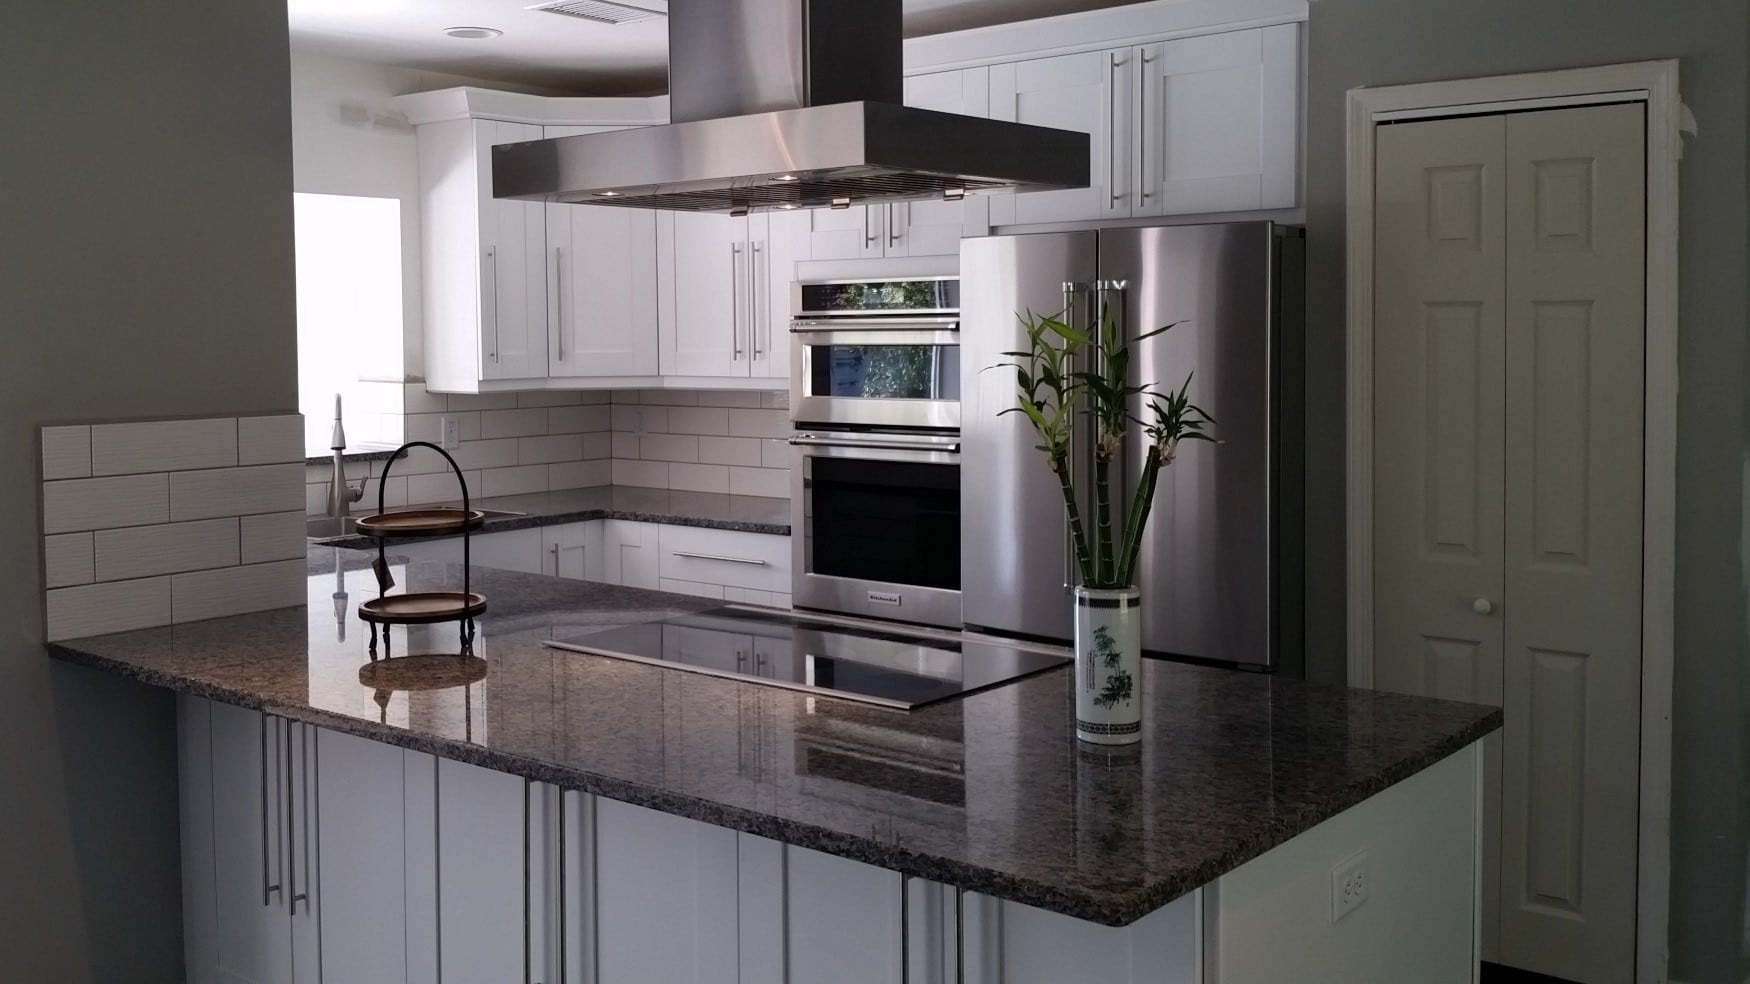 new project in tampa fl: single family home remodeling